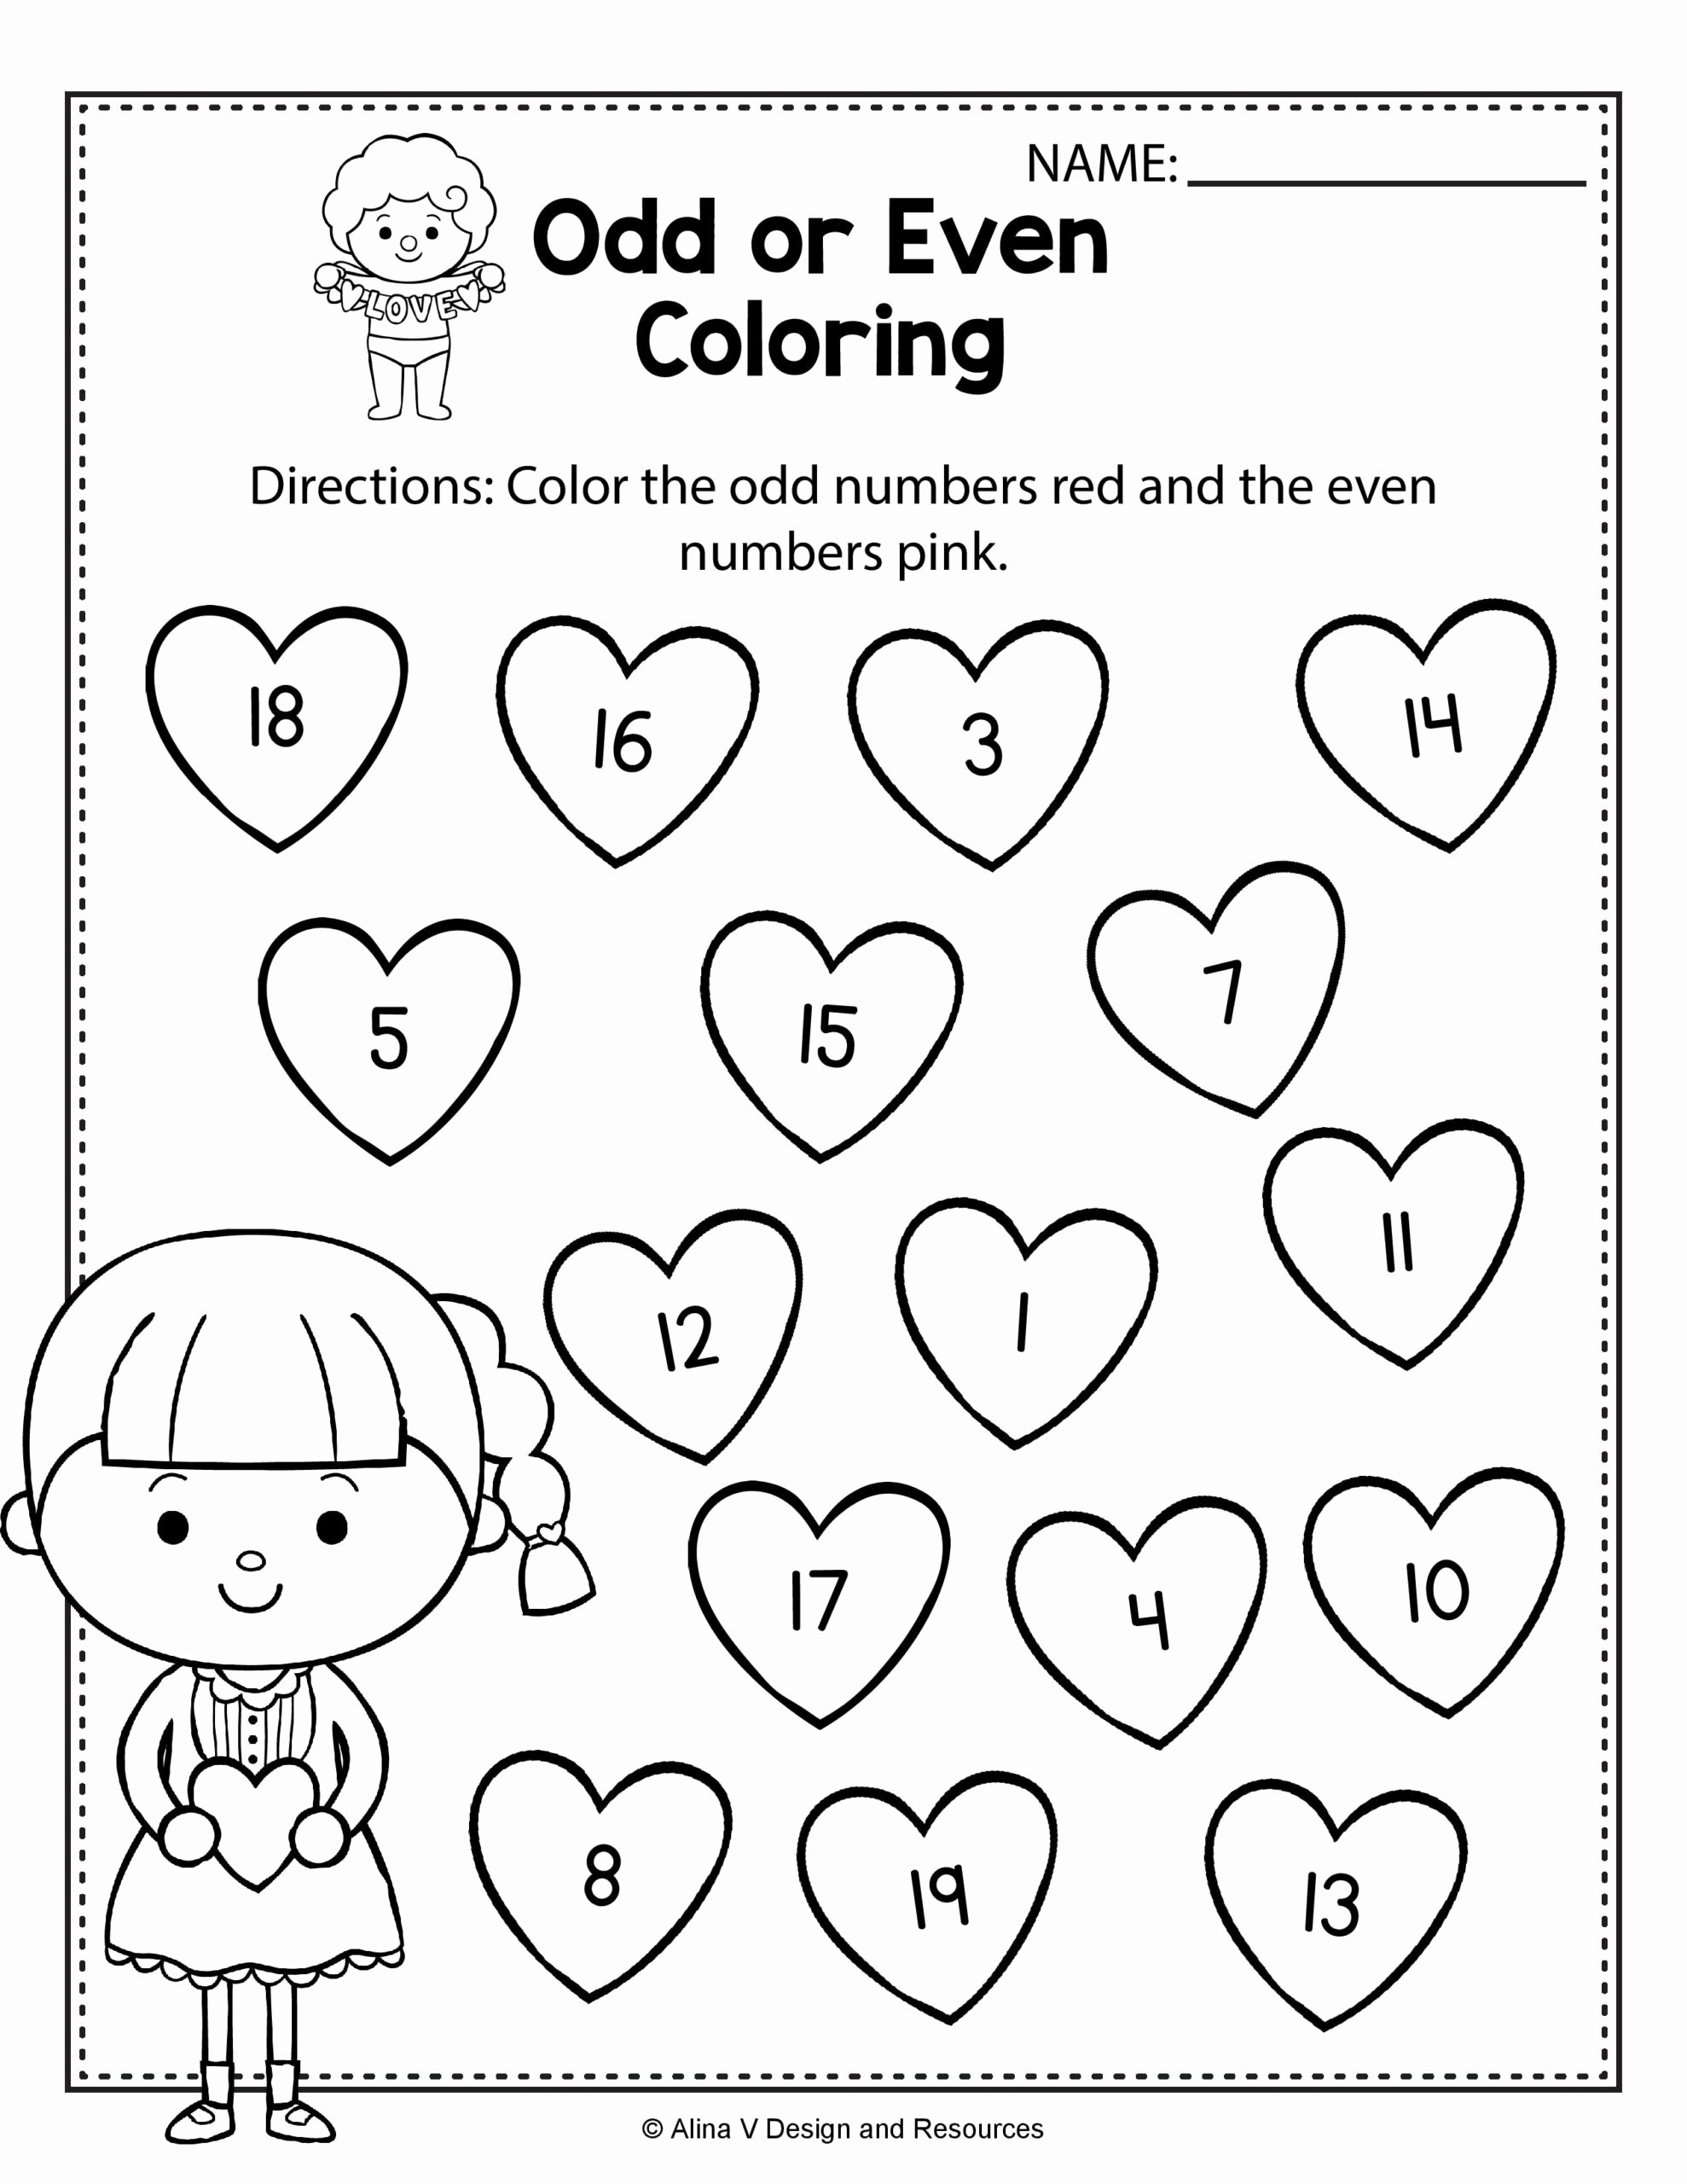 March Worksheets for Preschoolers Lovely March Preschool Worksheets Spring Summer Numbers to Trace